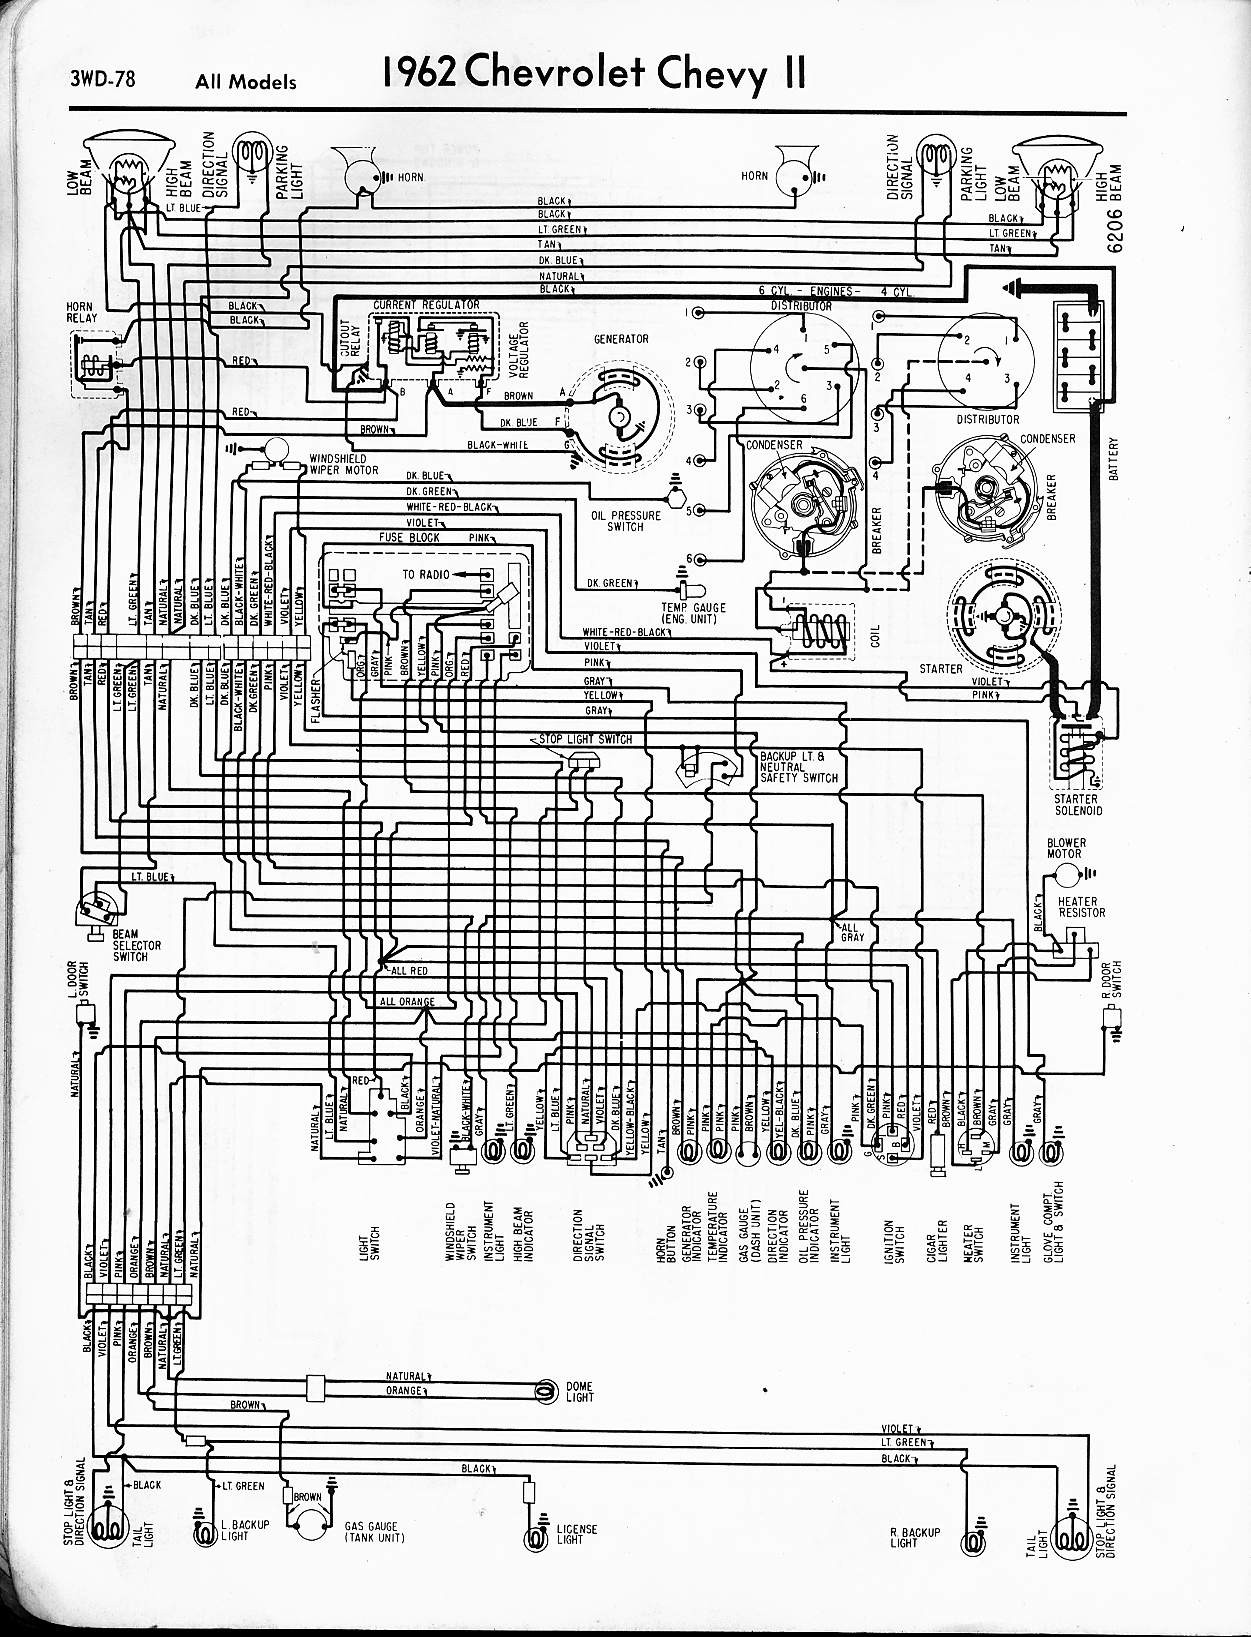 Tic Toc Tach Wiring Diagram For A Library. 68 Camaro Engine Wiring Diagram 57 65 Chevy Diagrams Of Tic Toc Tach. Wiring. Mopar Tic Toc Tach Wiring Diagram At Scoala.co